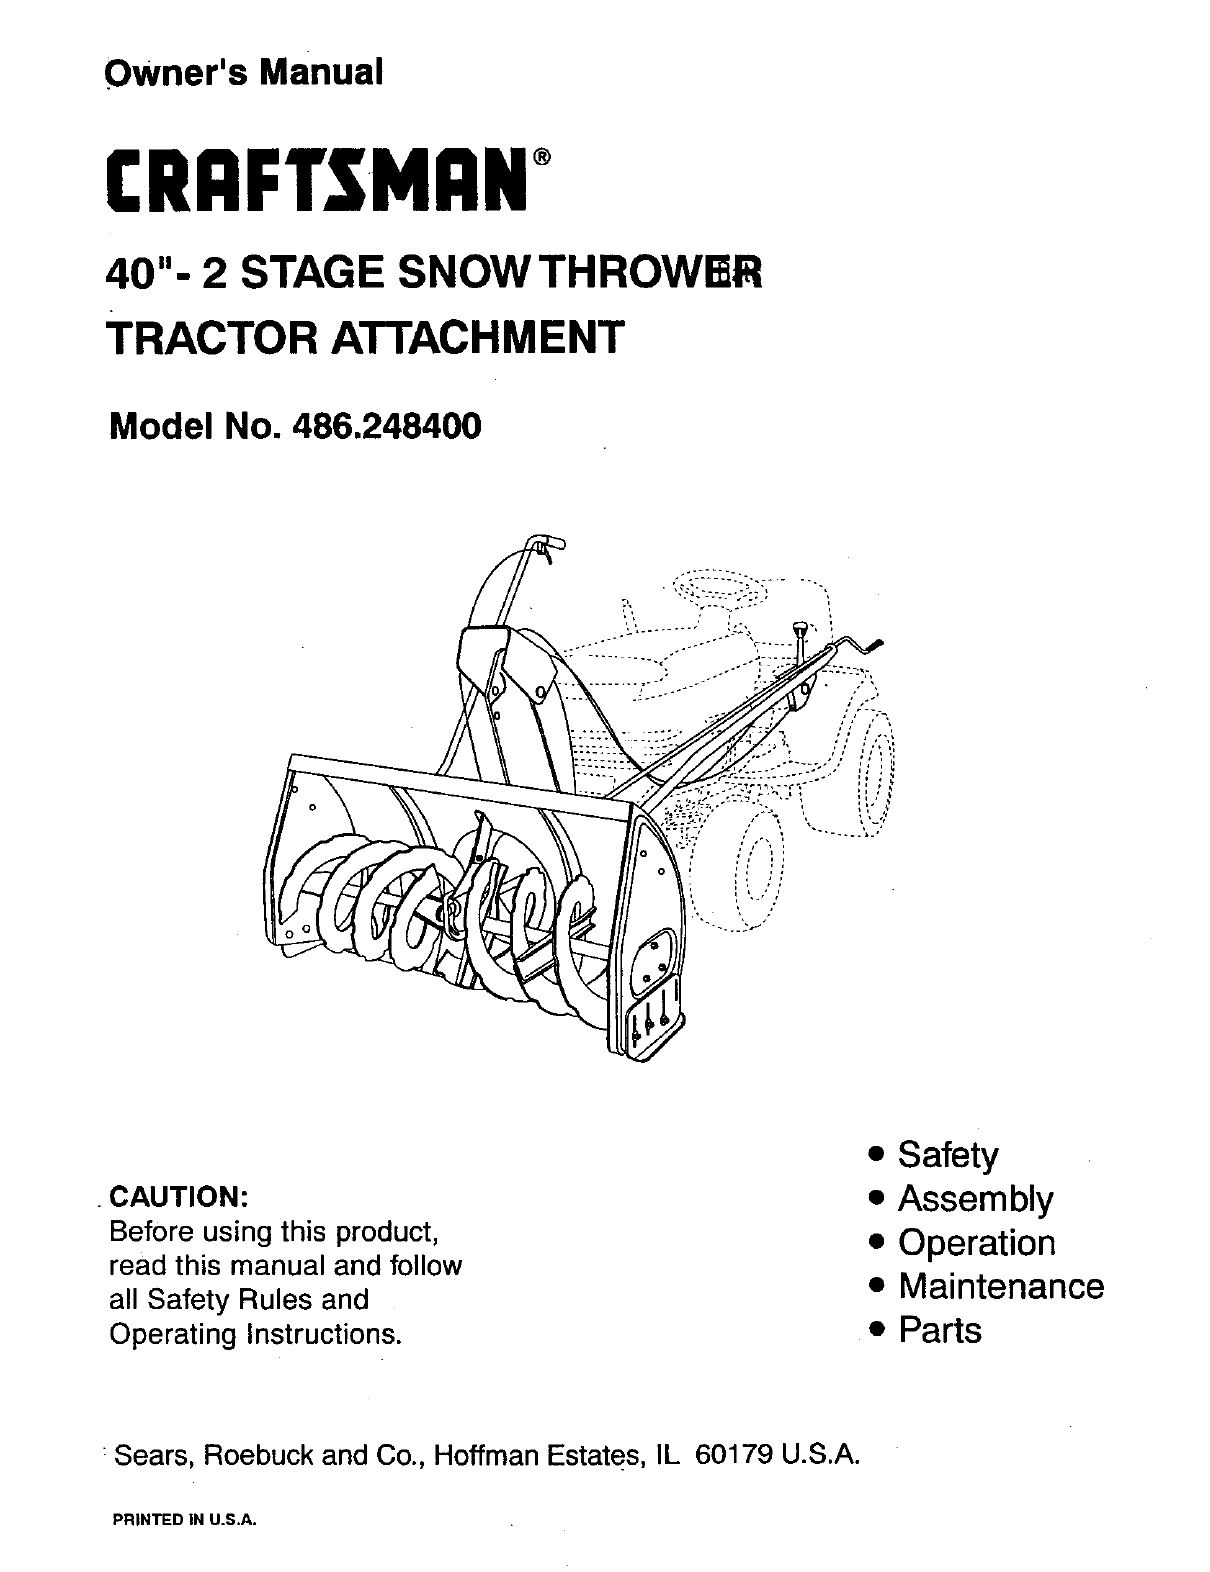 7dba15de 571b 43e3 8c77 6354fa9984cd bg1 craftsman snow blower 486 2484 user guide manualsonline com craftsman dgs 6500 wiring diagram at soozxer.org